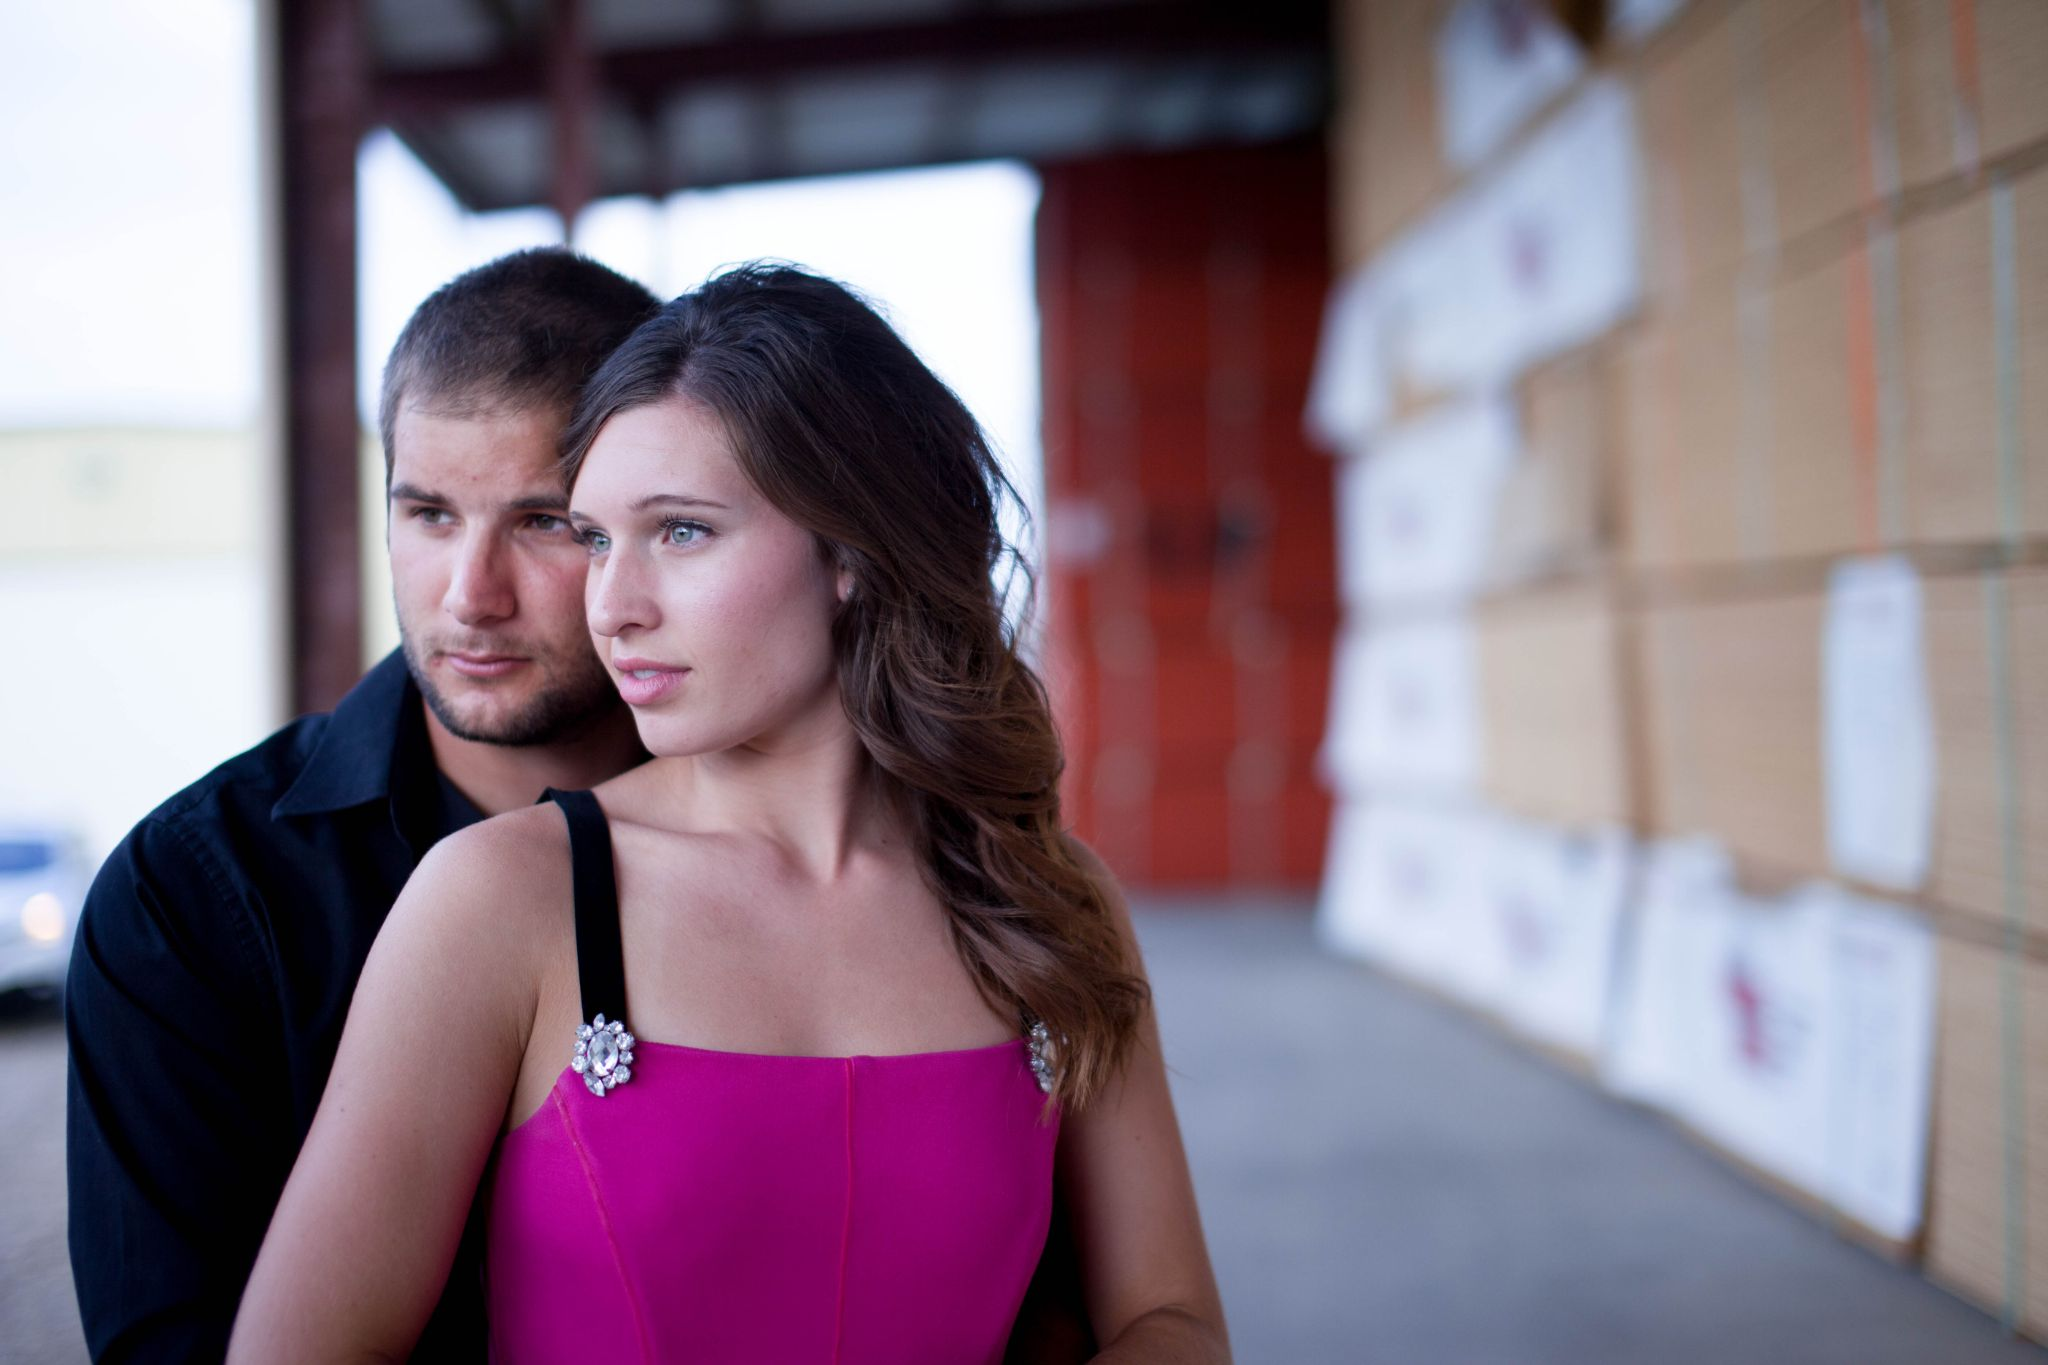 Brittany + Ben by Alexis Hess